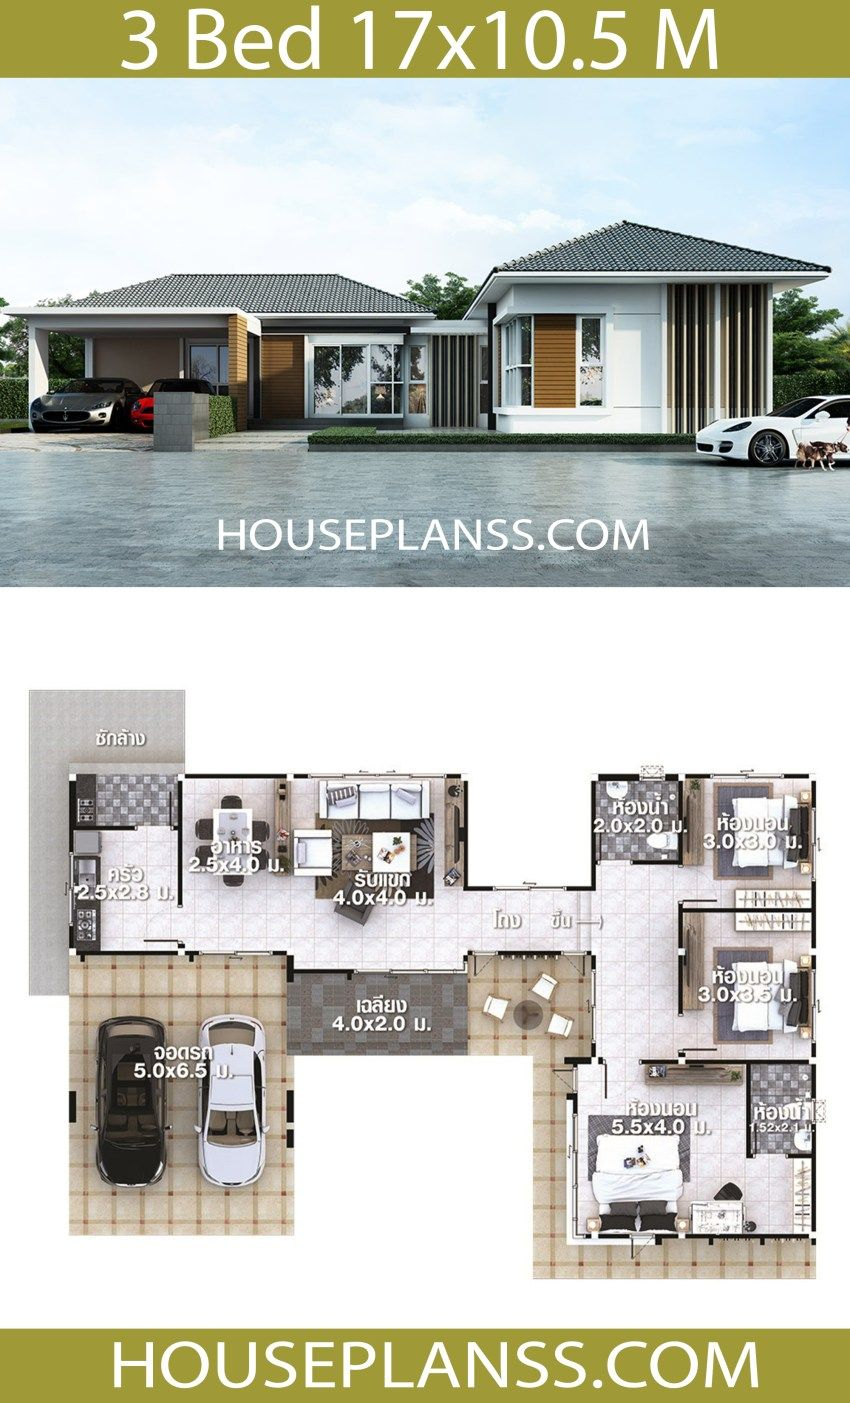 House Plans Idea 17x10 5 With 3 Bedrooms House Plans S Beautiful House Plans House Plans My House Plans